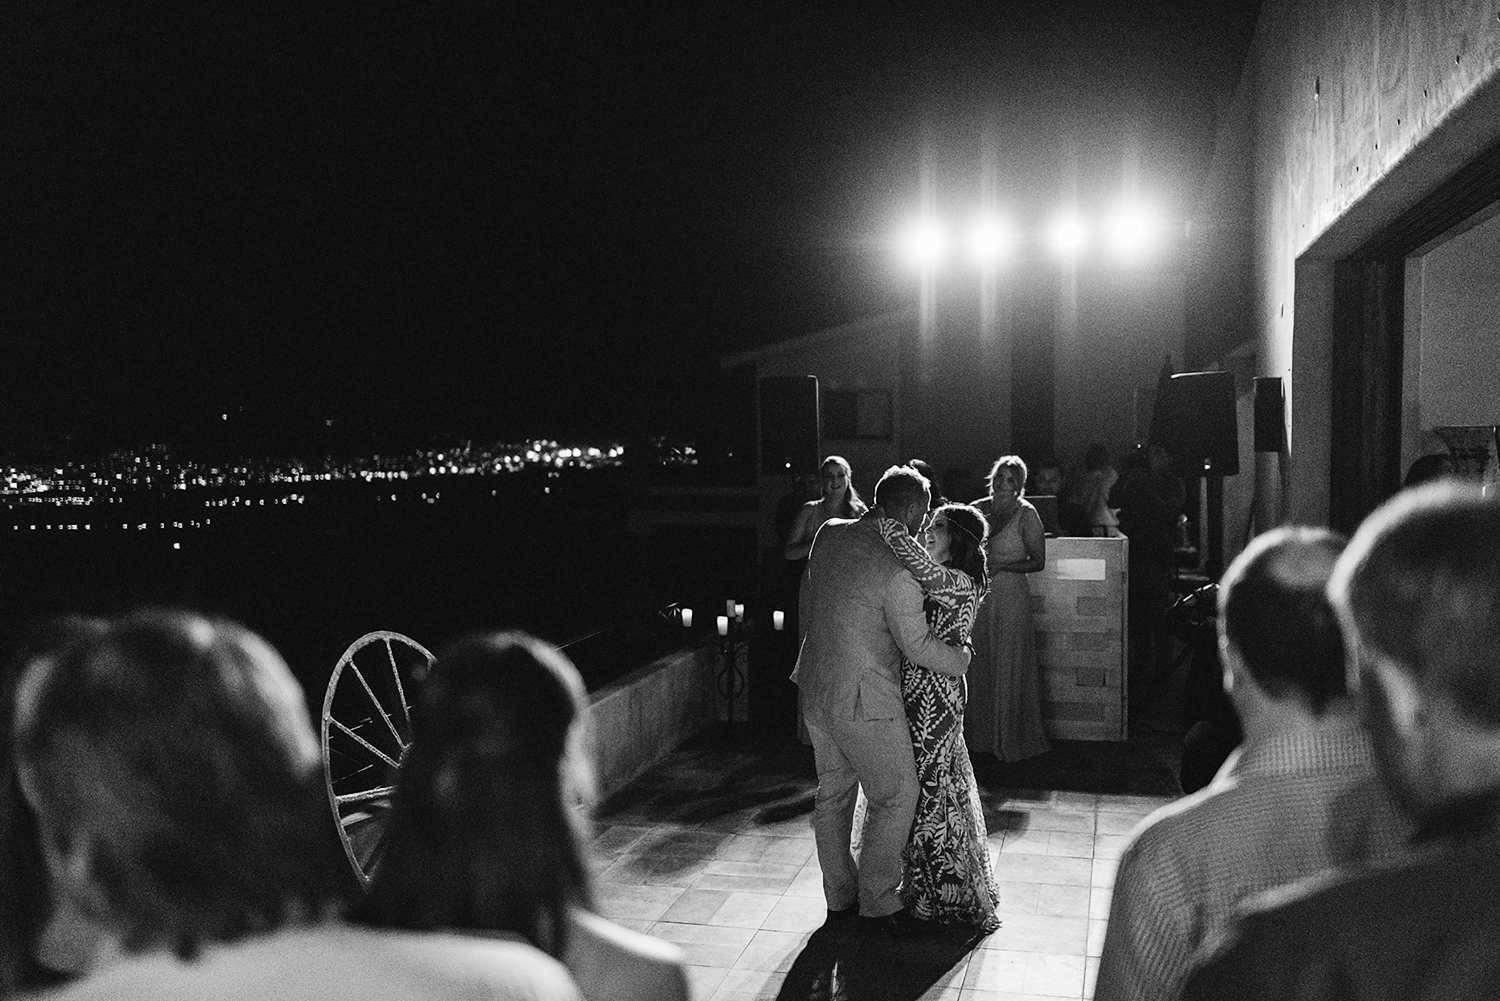 cabo-san-lucas-ventanas-private-residence-alternative-toronto-wedding-photographer-documentary-photojournalistic-reception-best-love-actually-moments-over-mountains-candid-first-dance-cabo-skyline-views.jpg